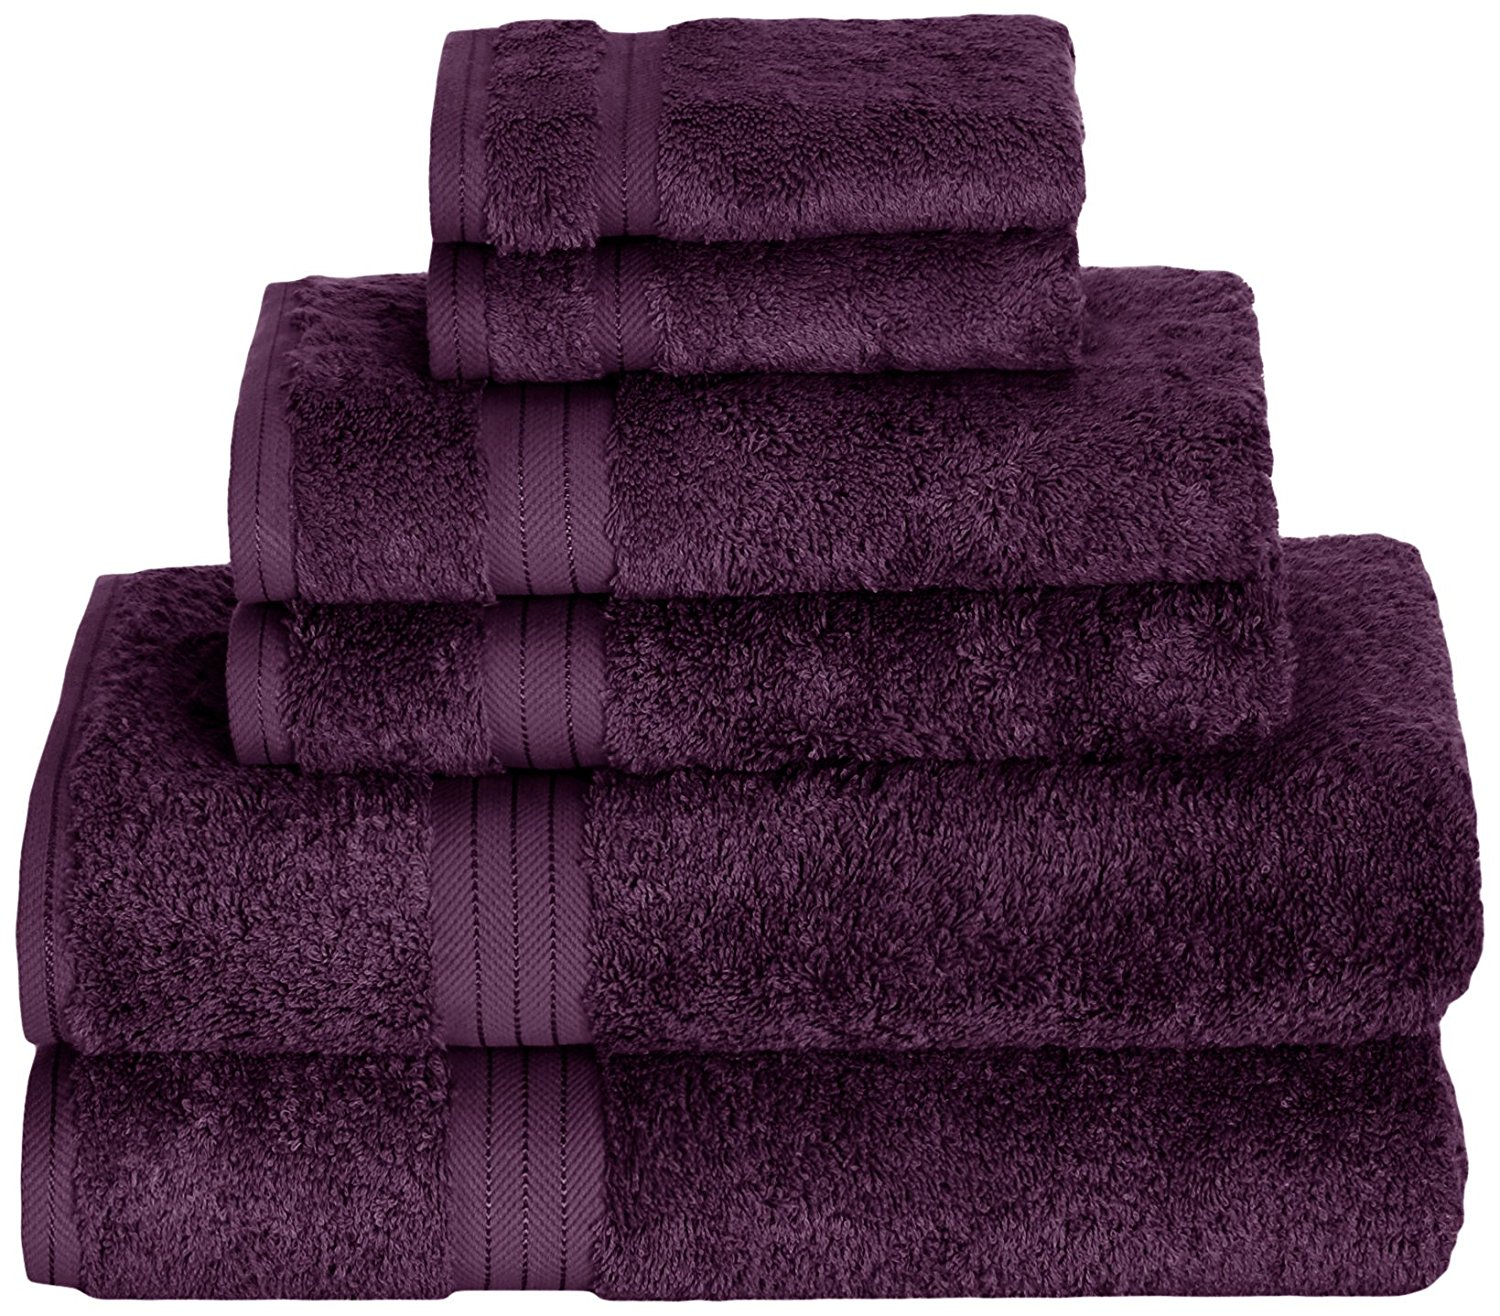 Daisy House Rayon Derived from Bamboo Towel Set (2 bath, 2 hand & 2 wash), Exotic Orchid